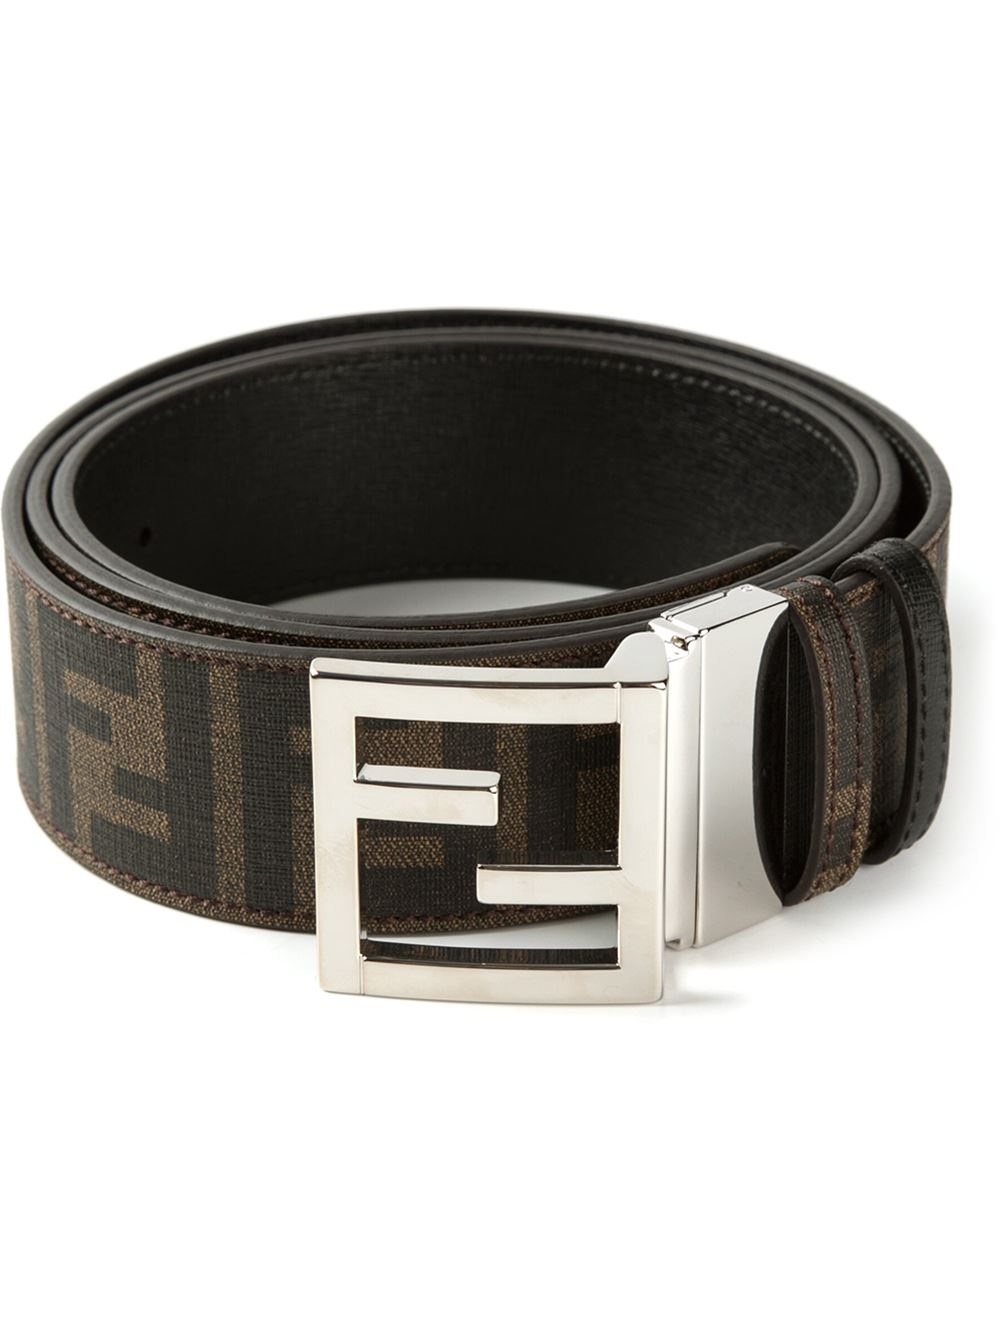 belt with FF logo - Brown Fendi